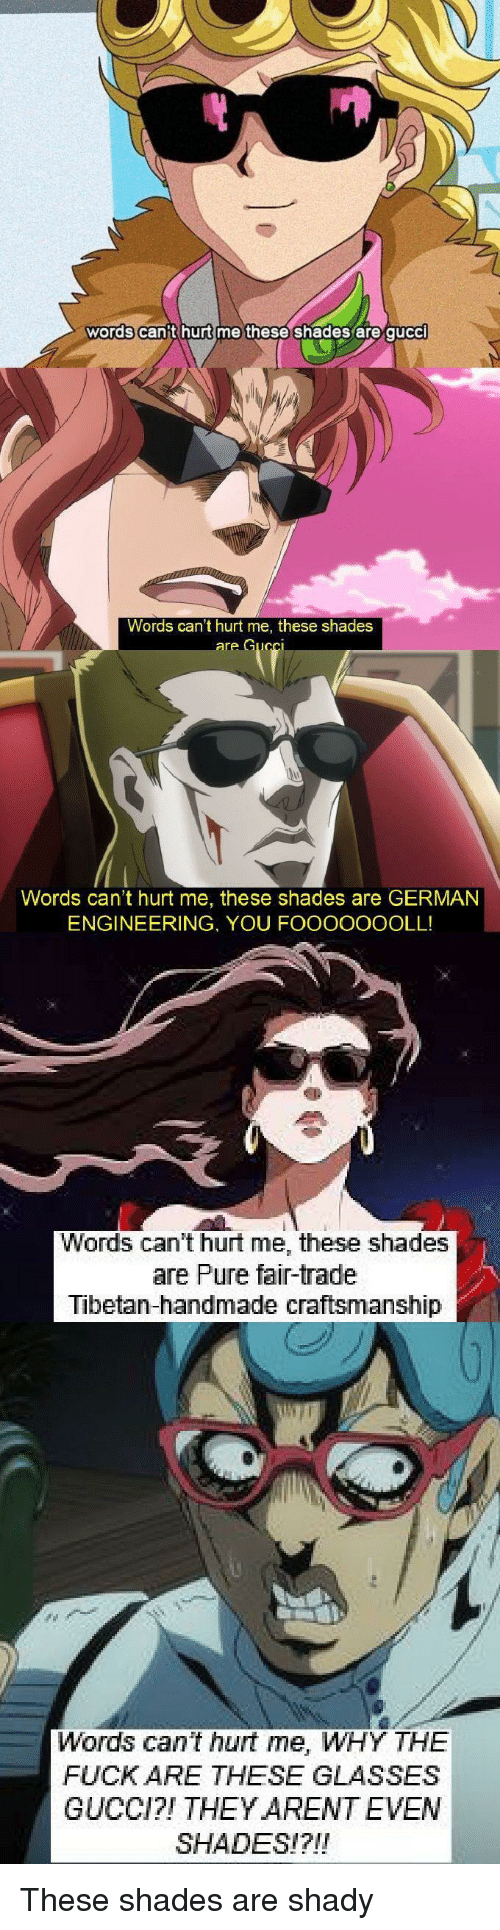 You Can't Hurt Me These Shades Are Gucci : can't, these, shades, gucci, Words, These, Shades, Can't, GERMAN, ENGINEERING, FOOOOOOOLL!